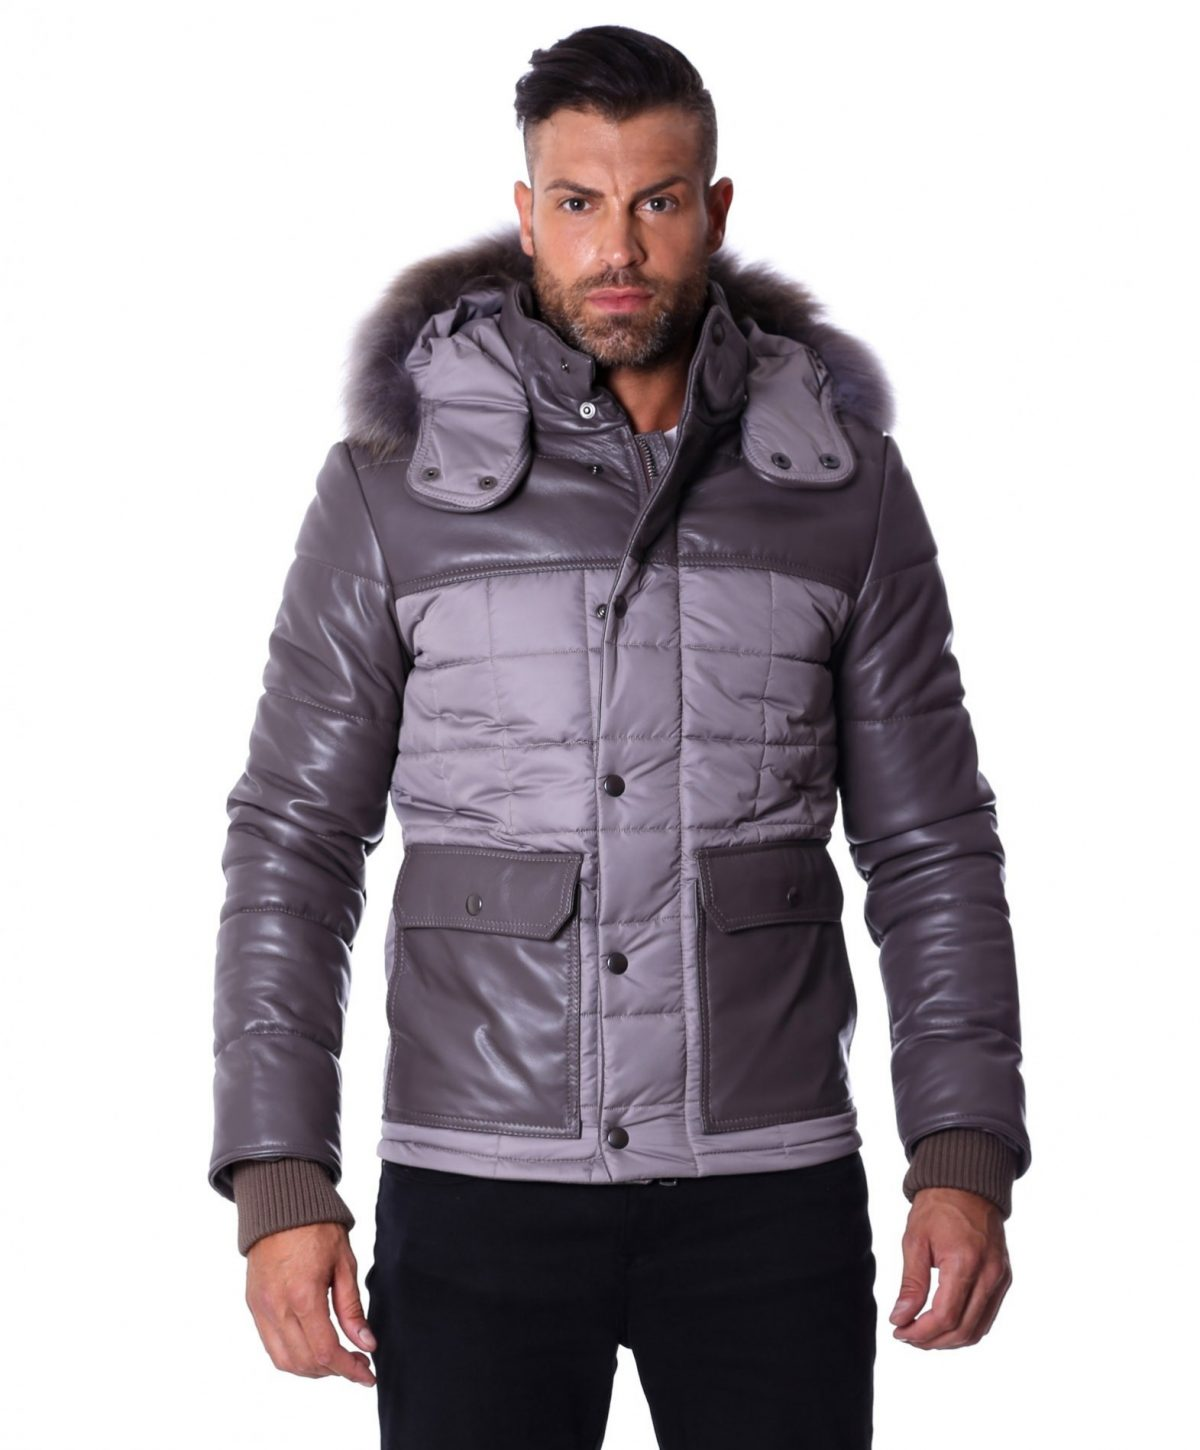 men-s-leather-down-jacket-with-hood-leather-and-fabric-grey-color-mod-u500